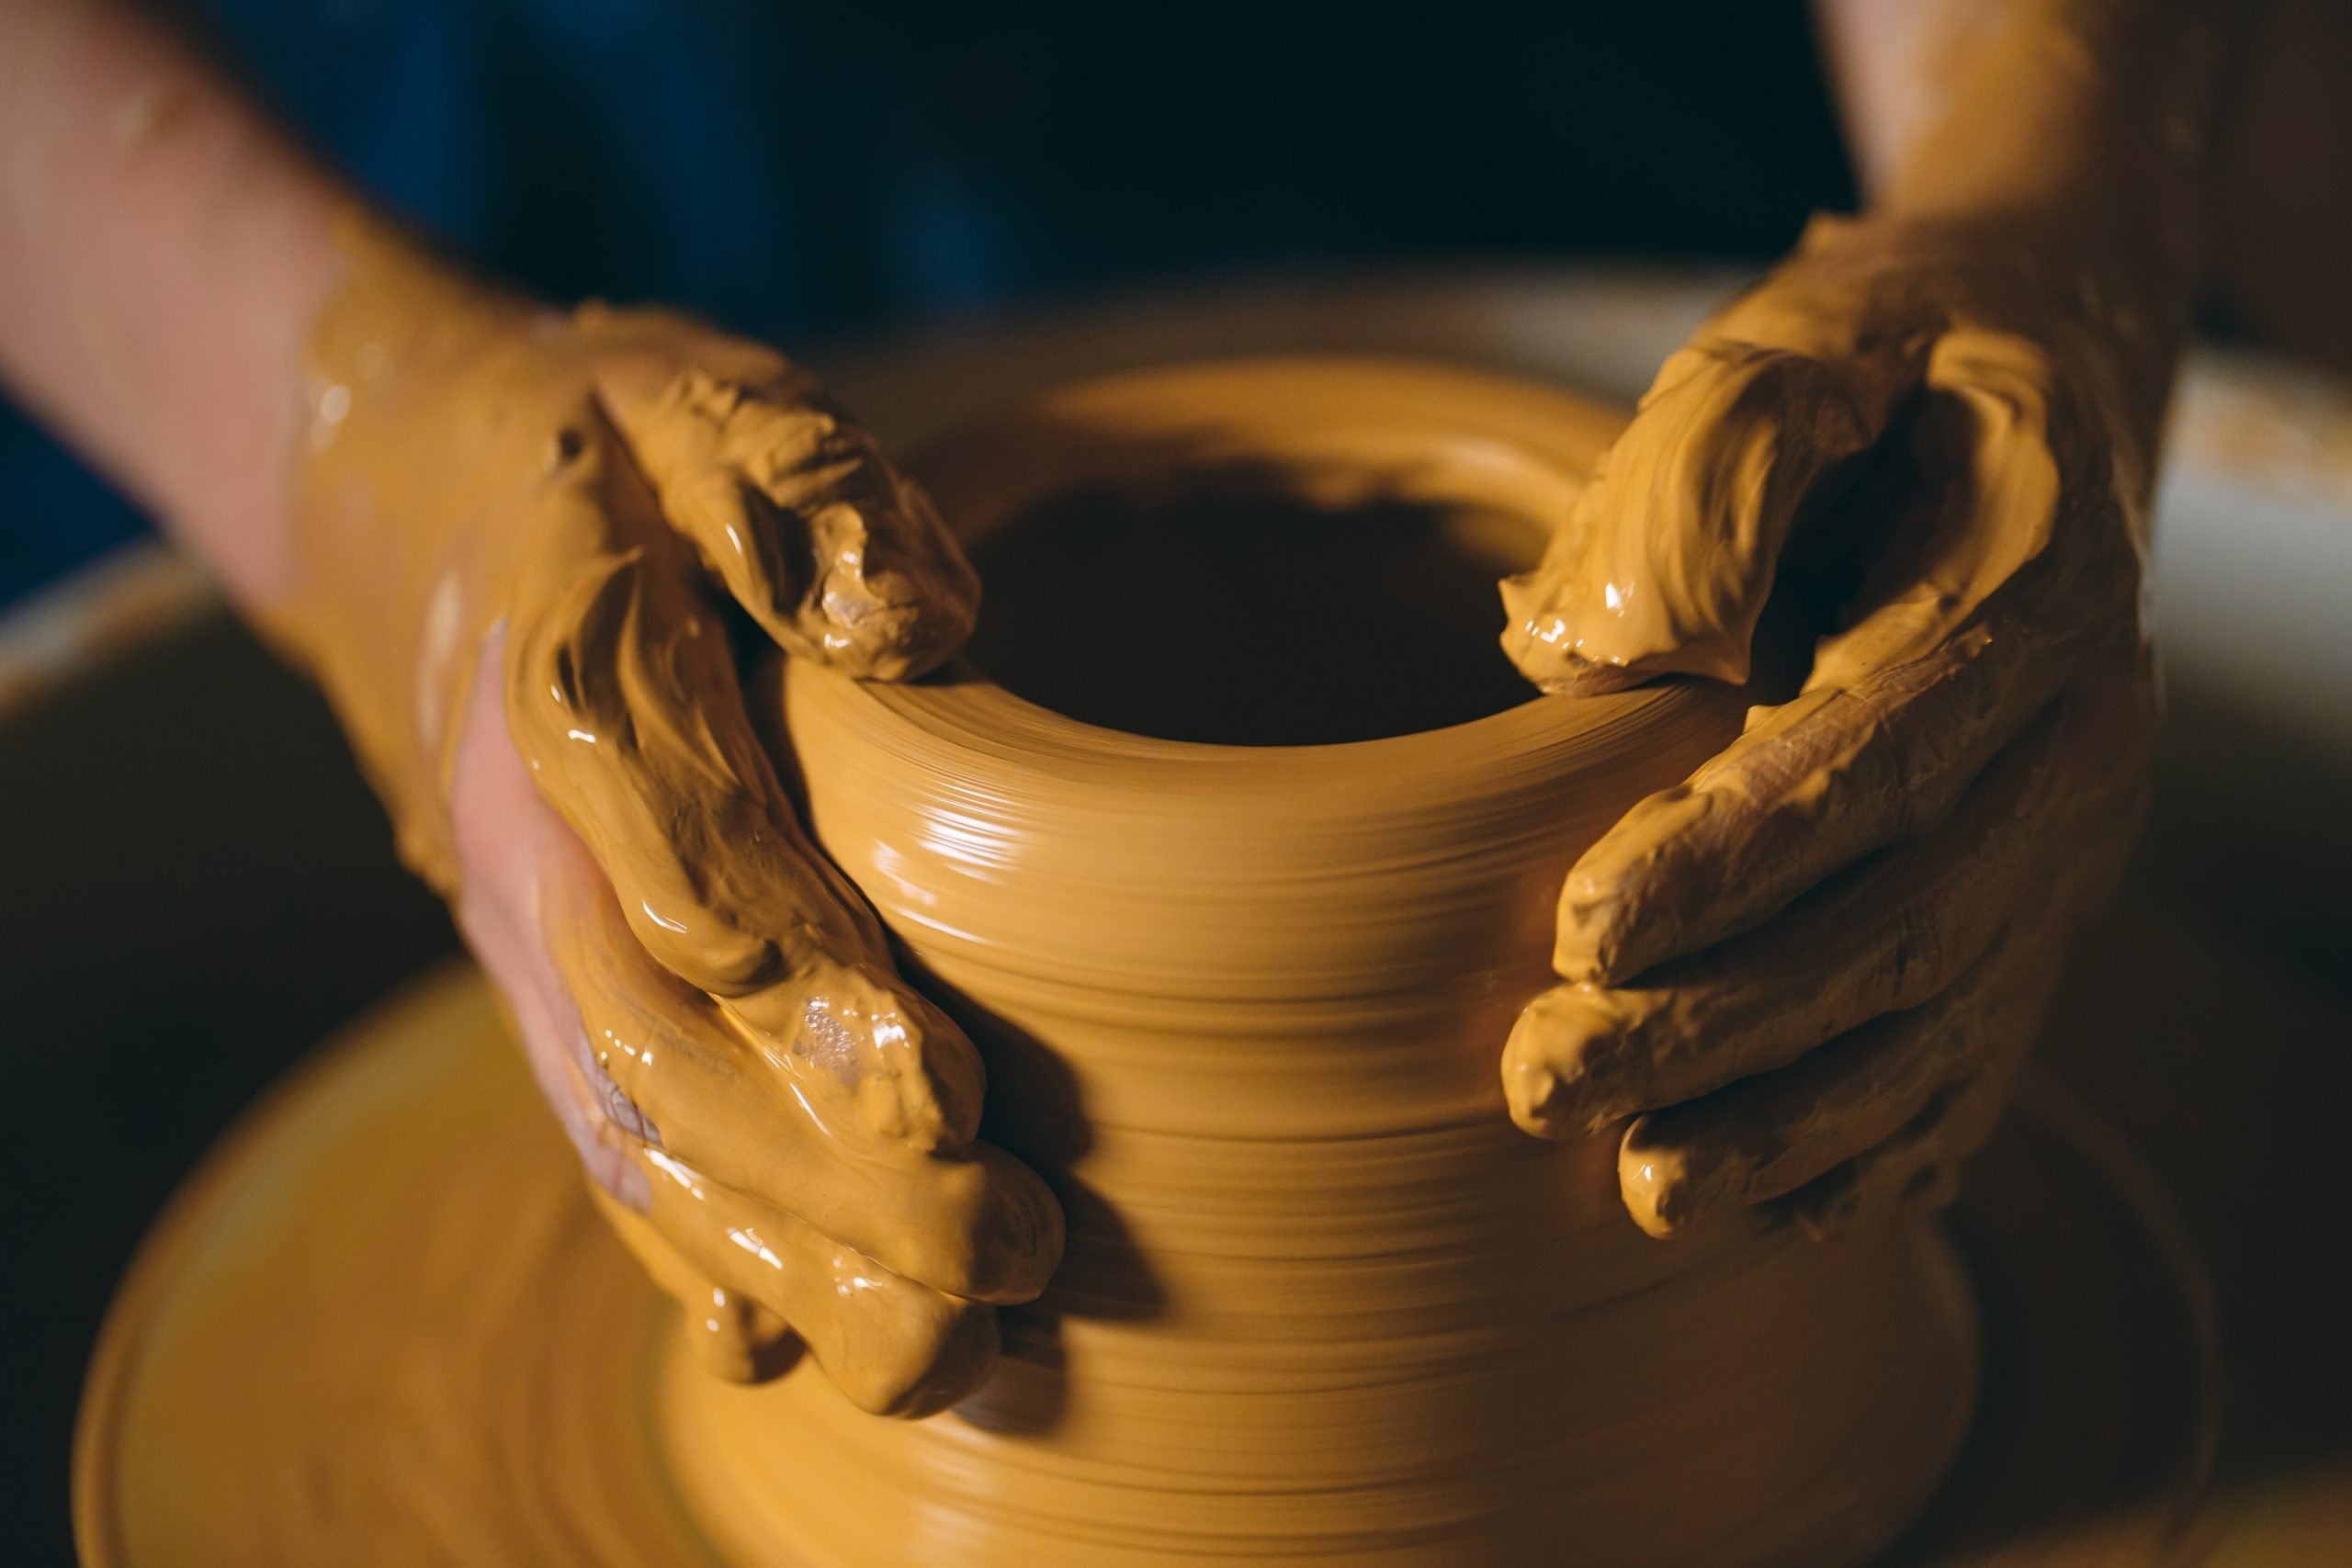 Check The 7 Best Online Pottery Classes And Courses Of 2021